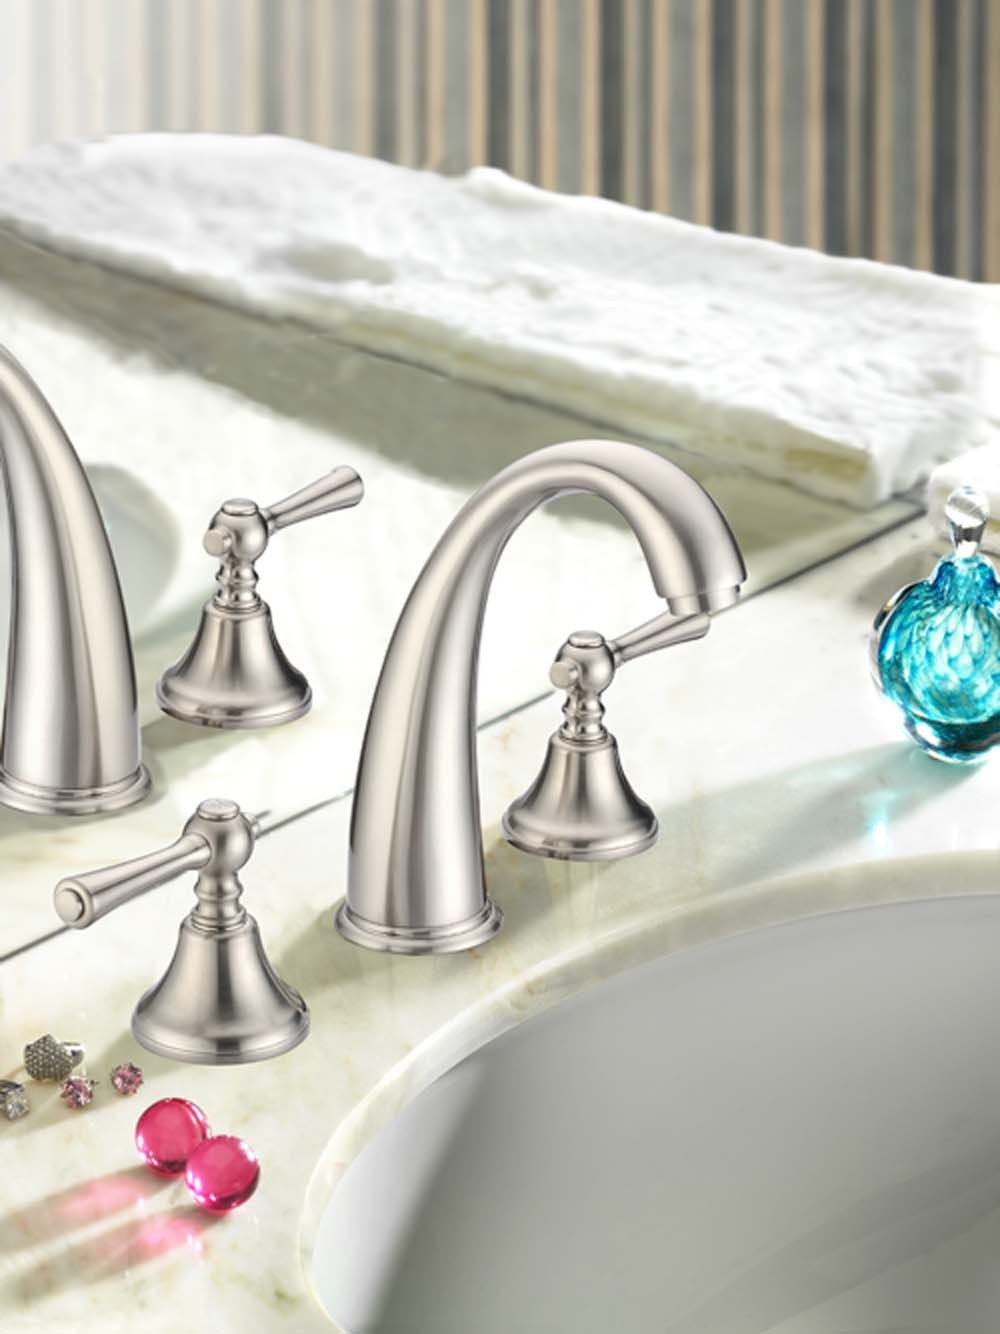 Apogee by Lenova Sinks - Transitional widespread lav faucet with a goose neck spout with pop up drain and ceramic cartridges in satin nickel - 8 Pack by Apogee by Lenova Sinks